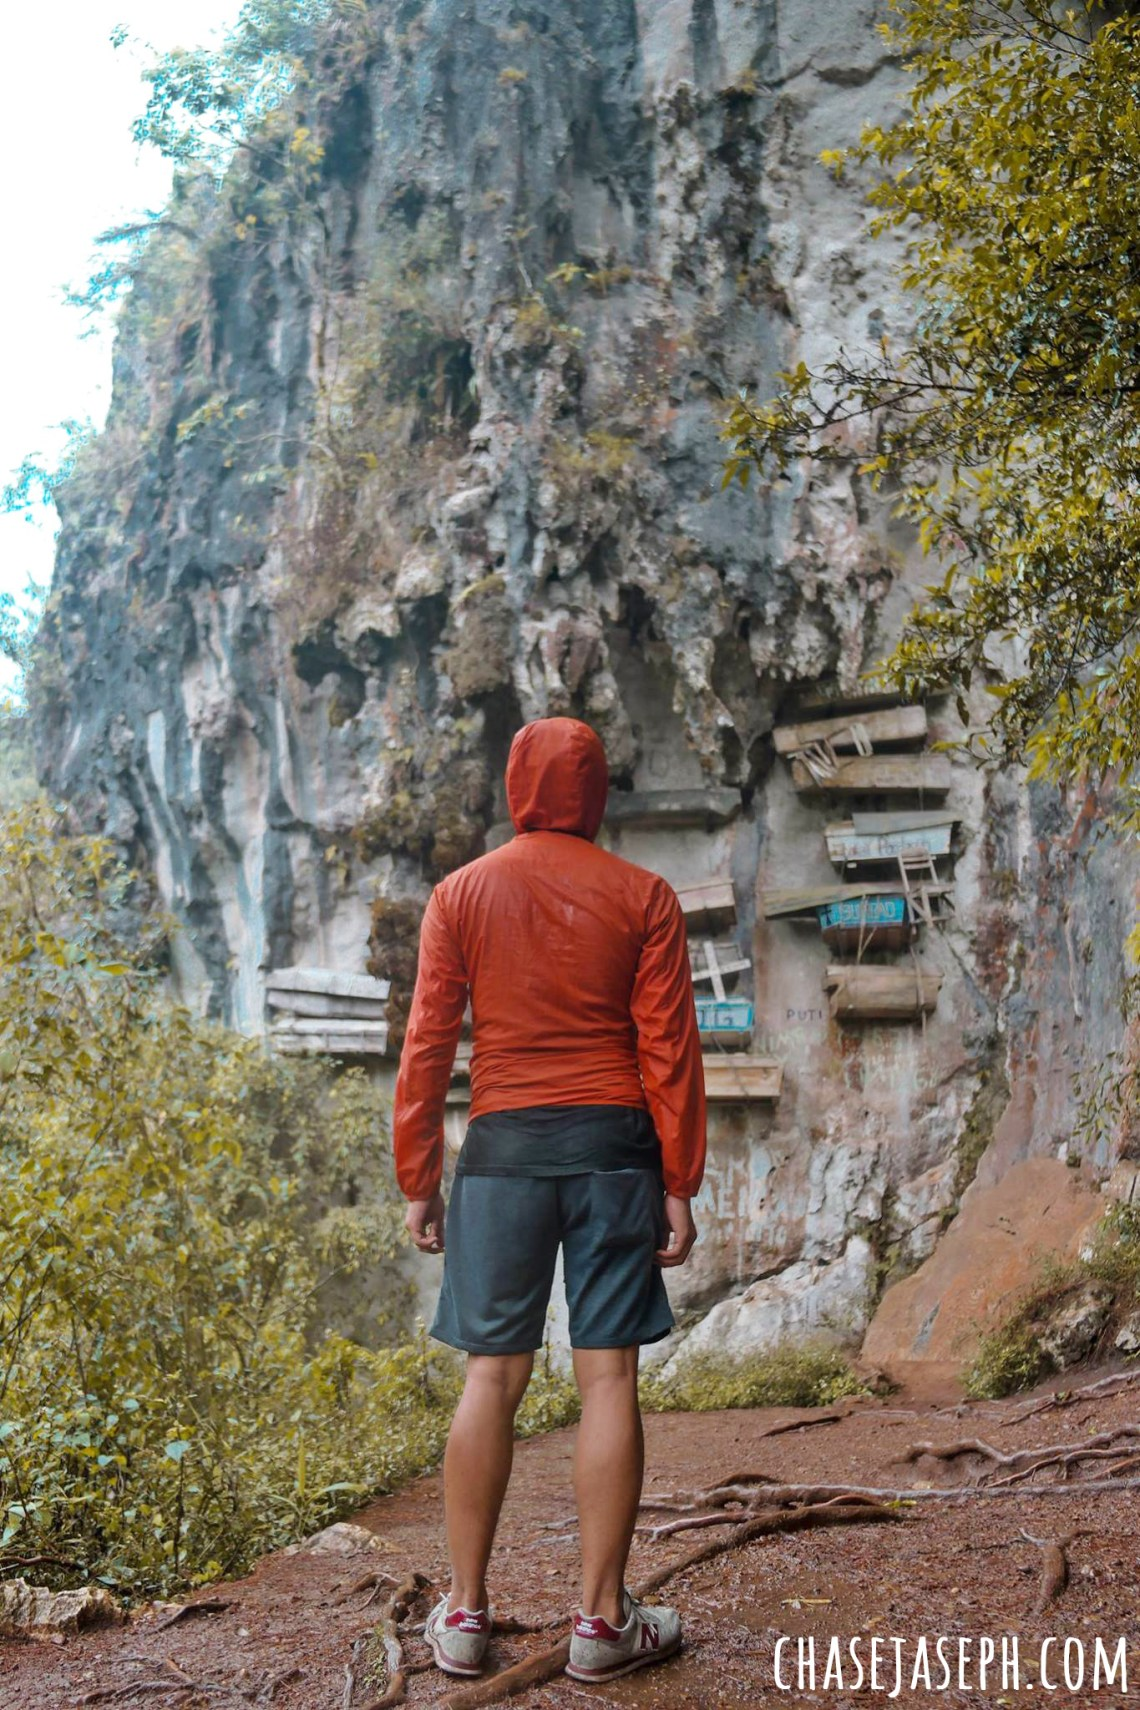 Sagada, Mountain Province (Travel Guide)